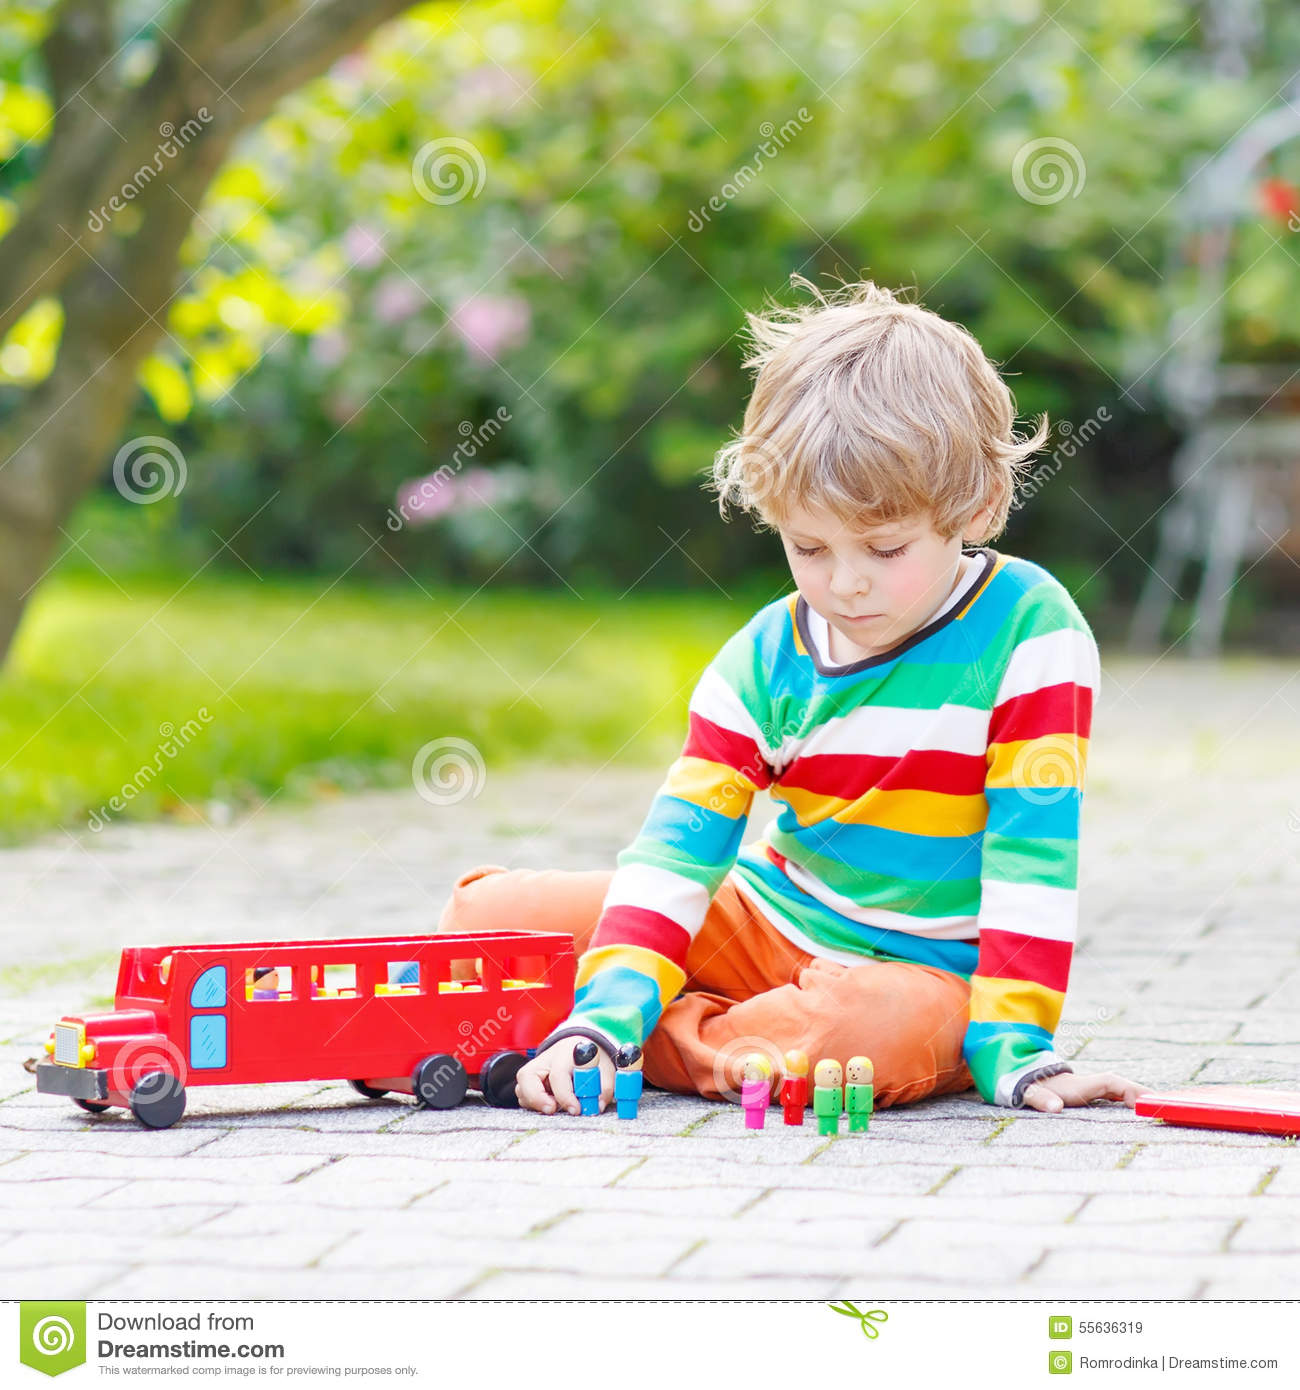 Toys For Active Boys : Active kid boy playing with red school bus and toys stock